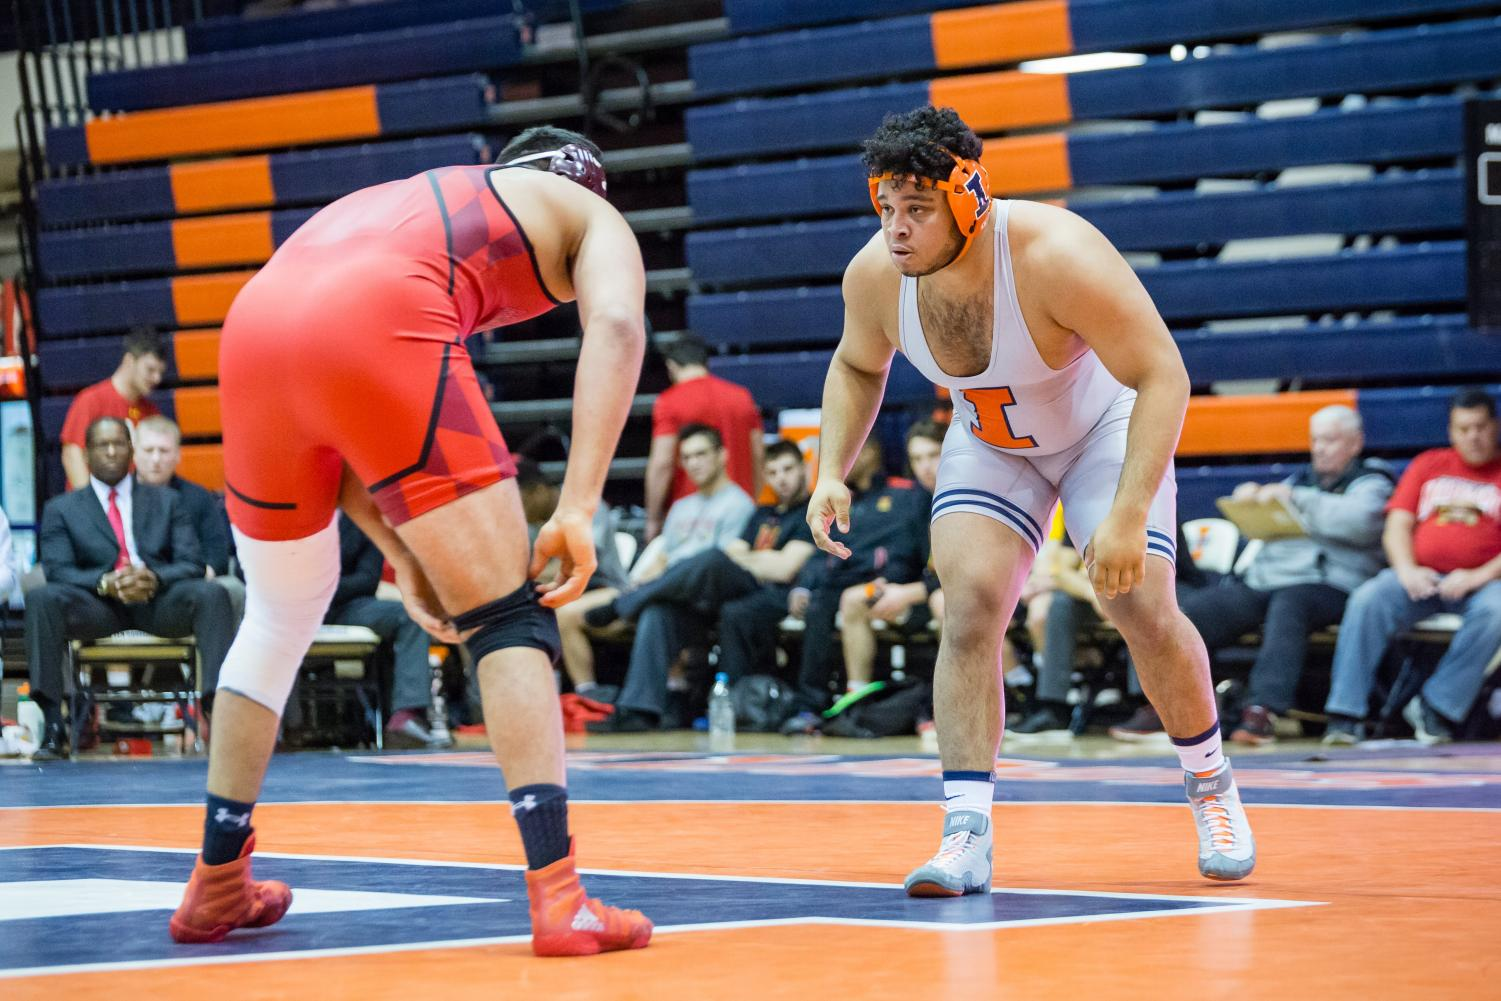 Illinois' Deuce Rachal wrestles with Maryland's Youssif Hemida in the 285-pound weight class during the meet at Huff Hall on Jan. 28. The Illini won 25-18. Rachal will compete this year alongside his two brothers who joined the program.